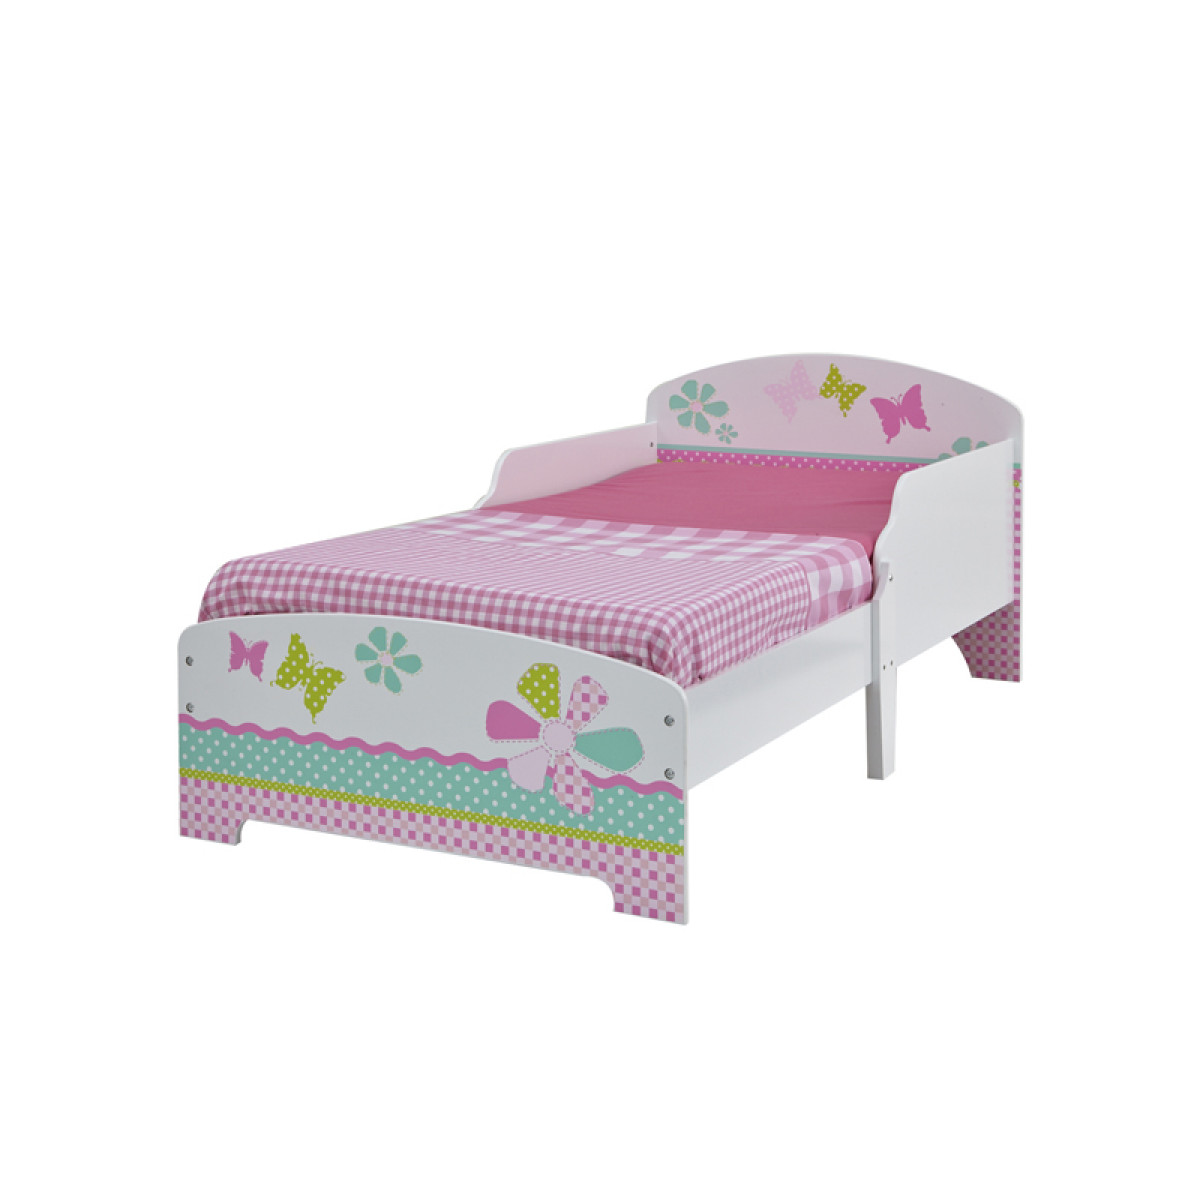 Girls Pretty N Pink Patchwork Toddler Bed